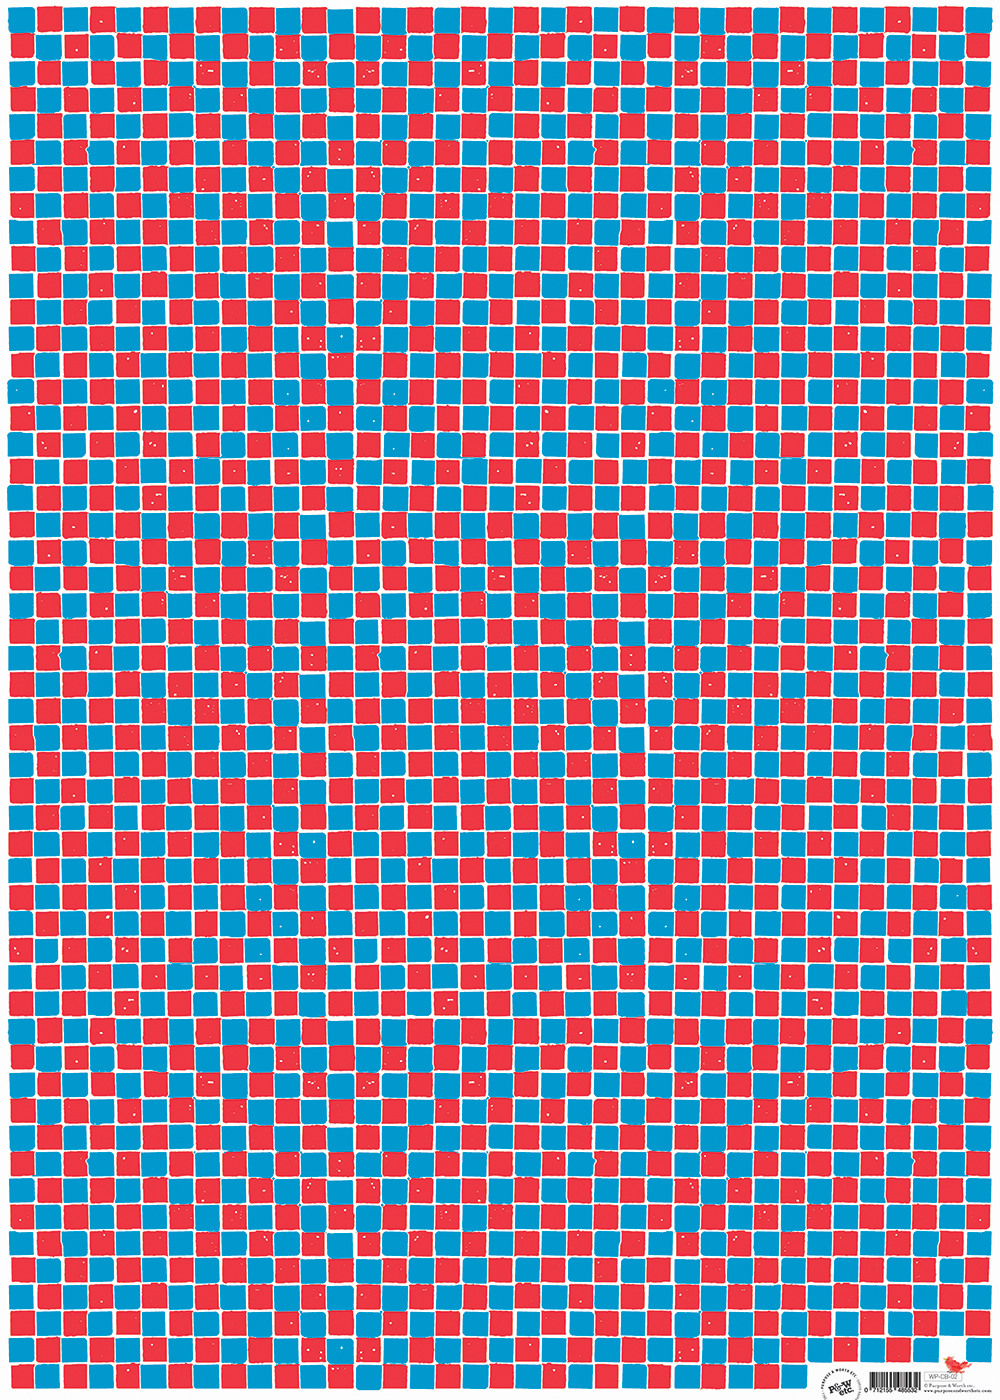 Checkerboard wrapping paper, Red + blue: WP_CBRB_02